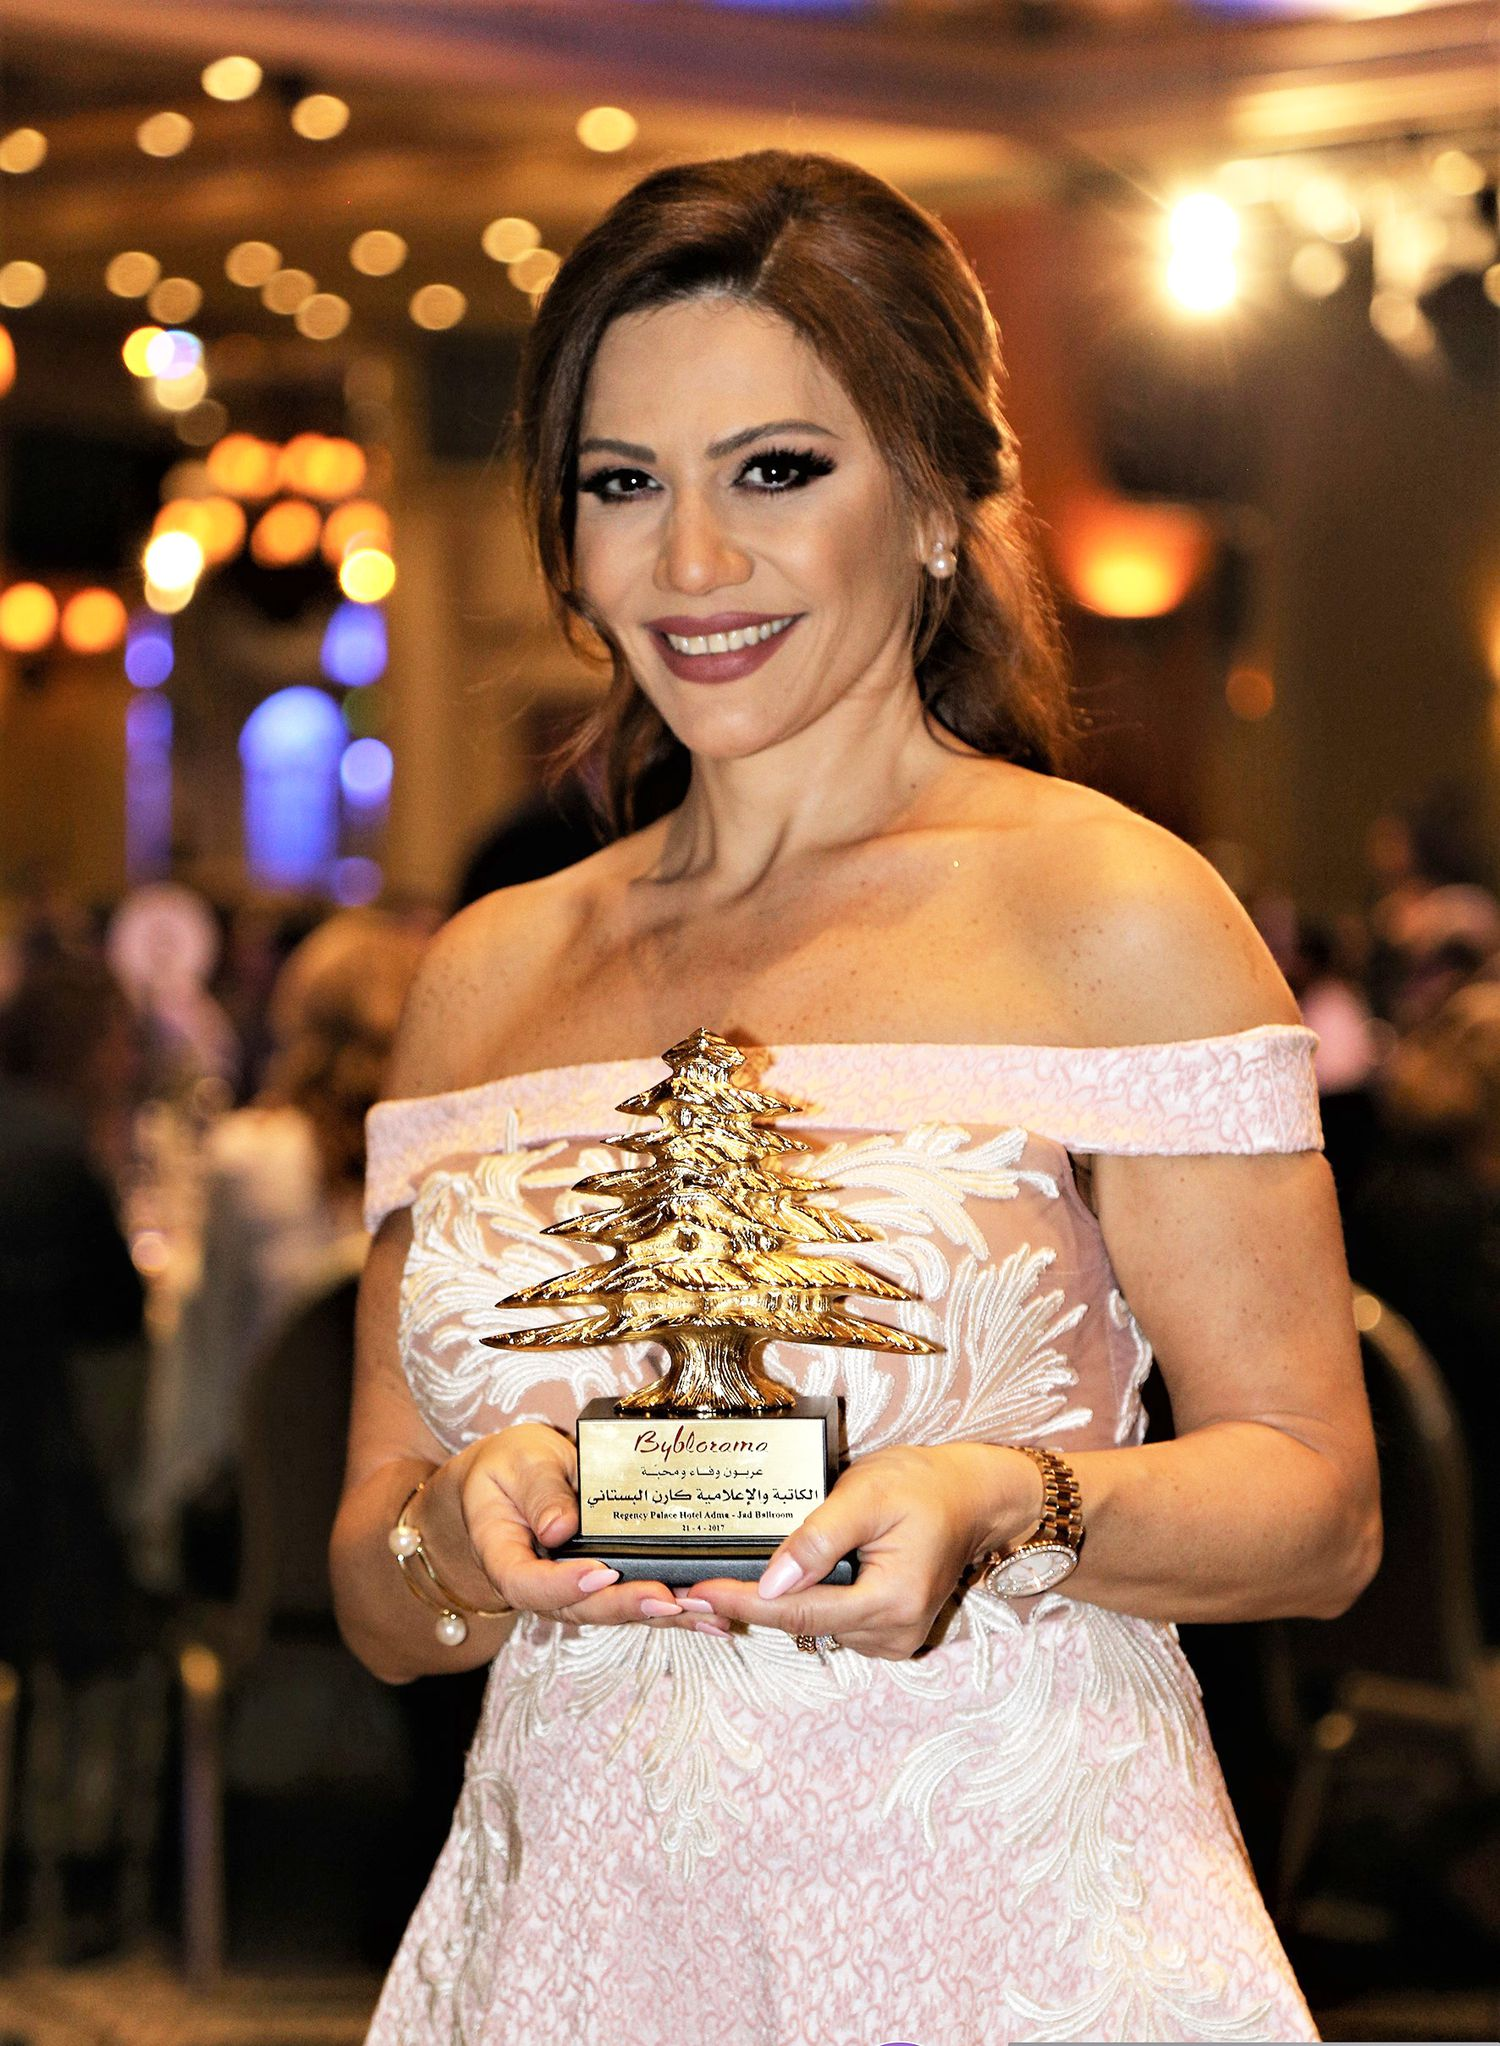 Karen Boustany poses with her award